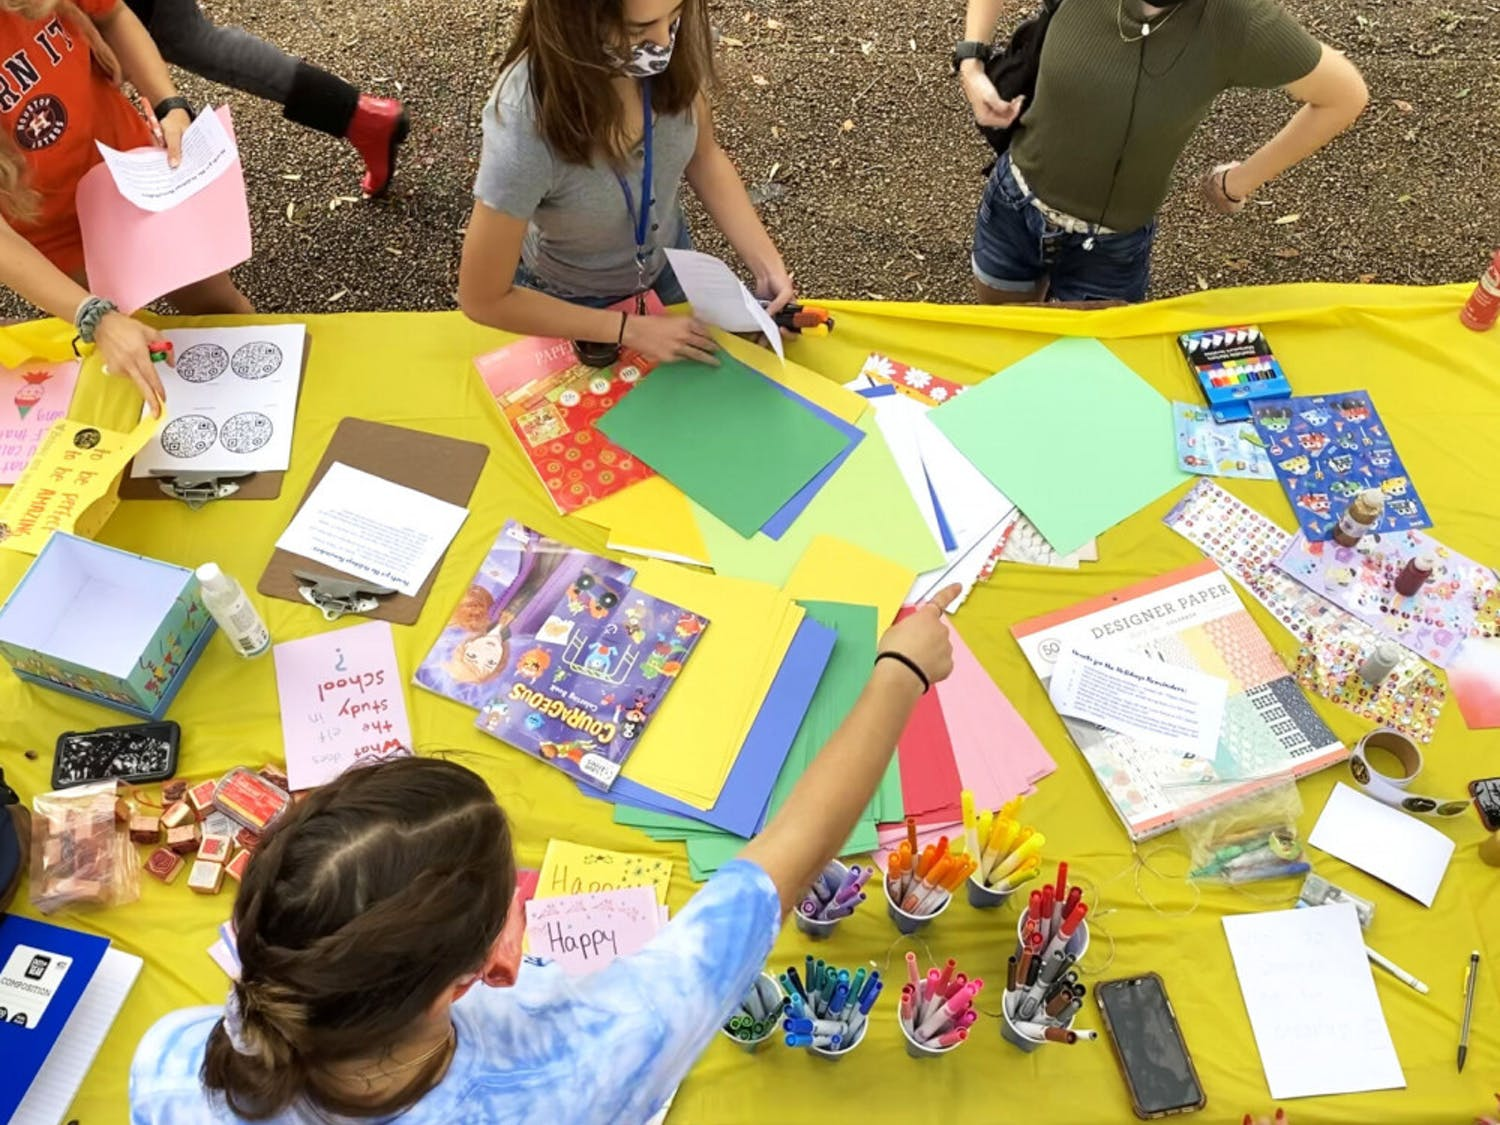 People create cards during the Hearts for the Holiday's event, held at Turlington Plaza and hall on Tuesday, Nov. 10, 2020. The event was hosted by Friends for Life of America.